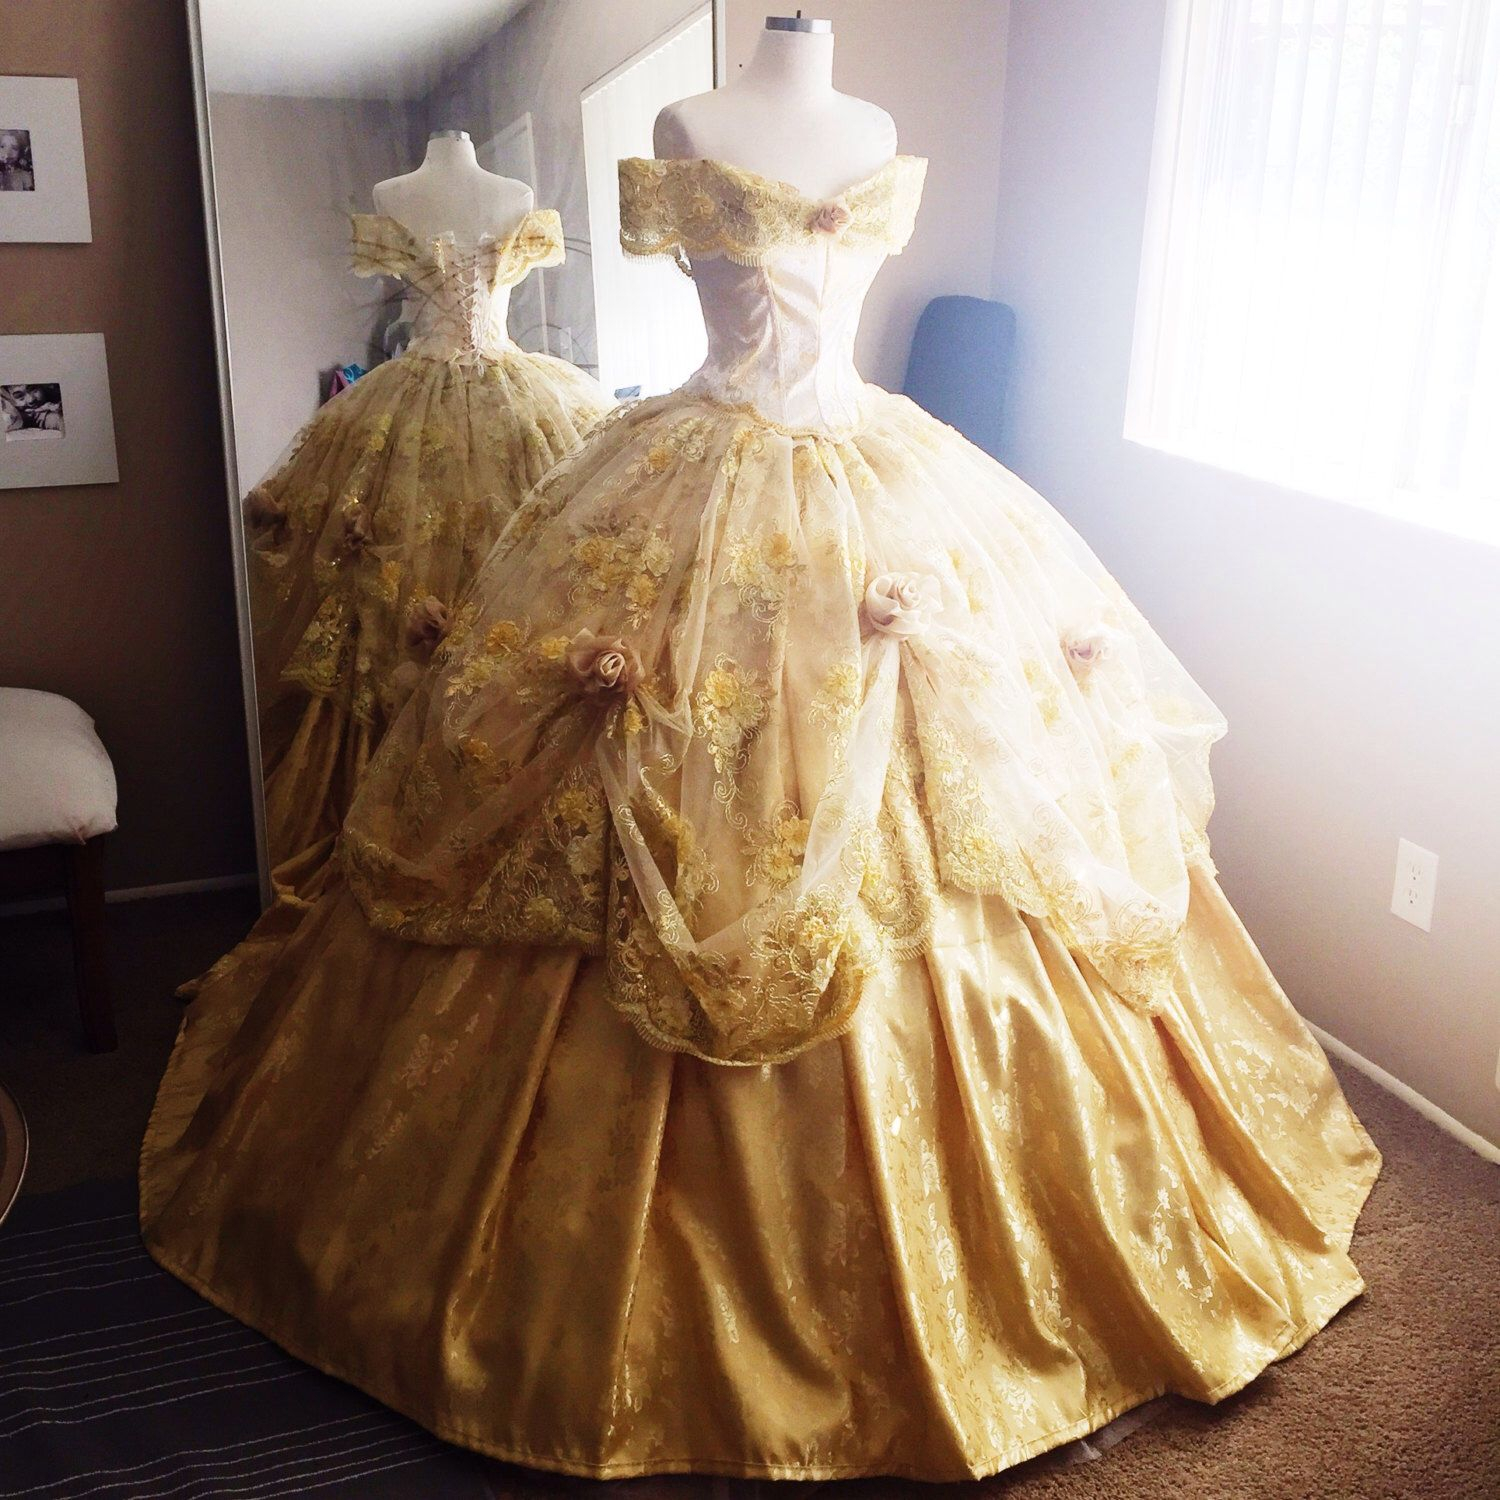 disney inspired deluxe belle ball gown from beauty and the